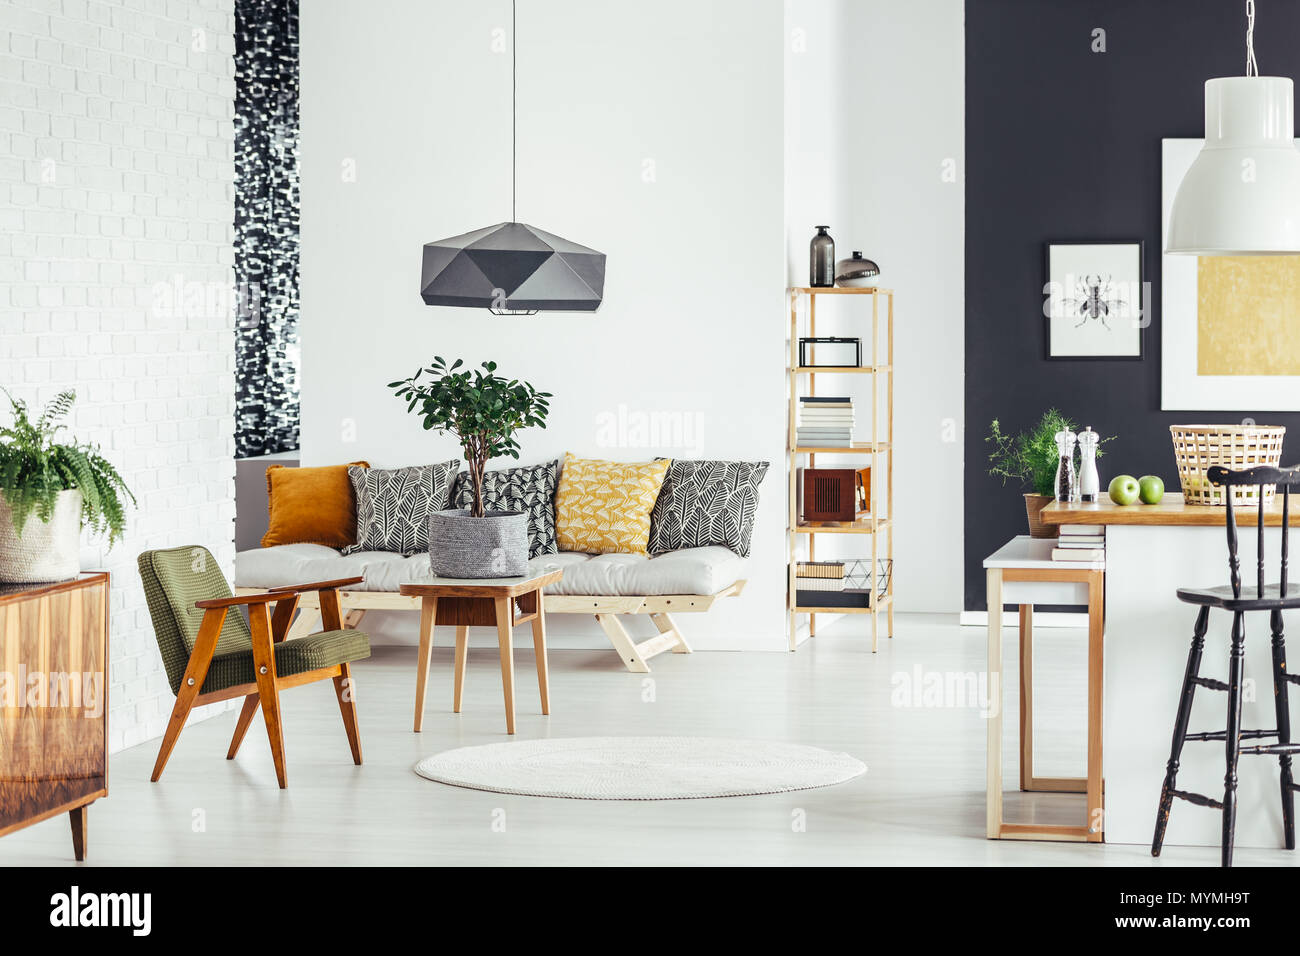 Small tree in material pot on wood table next to vintage green chair in room with patterned pillows on sofa Stock Photo